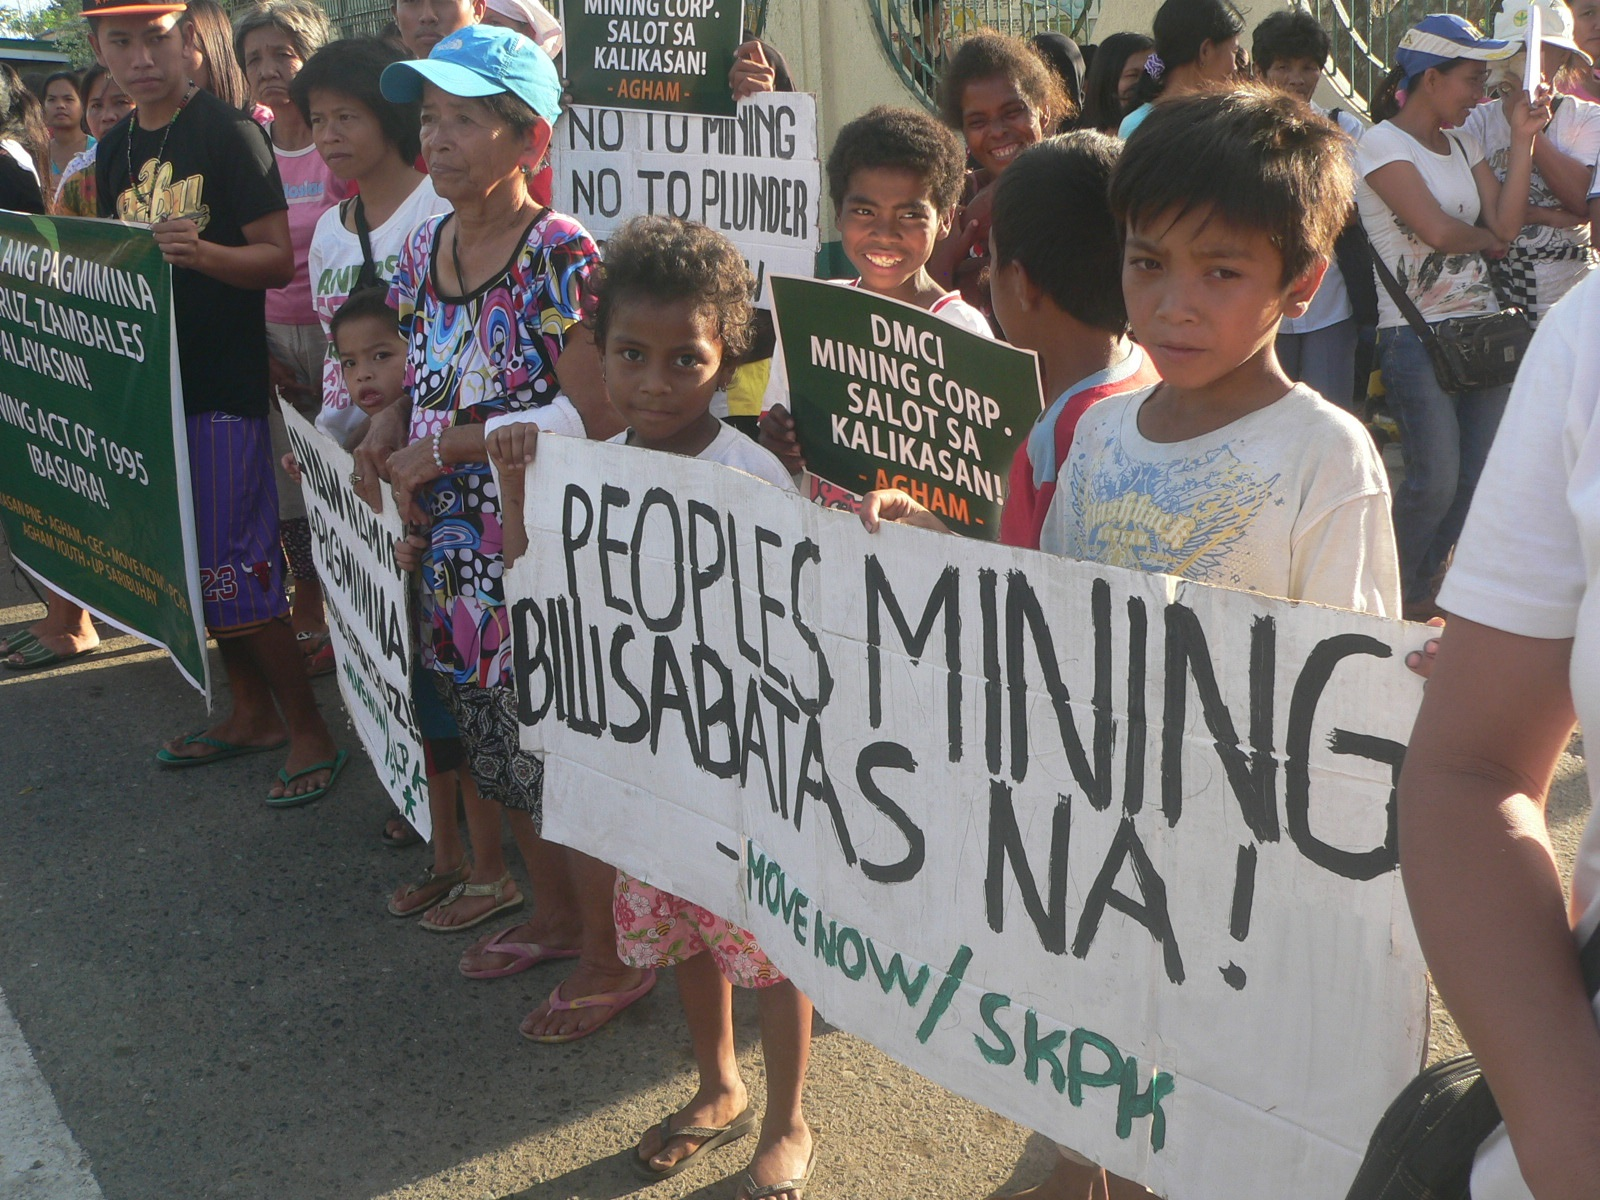 Ayta families join the protest against mining in Sta. Cruz, Zambales. (Photo by D.Ayroso/Bulatlat)